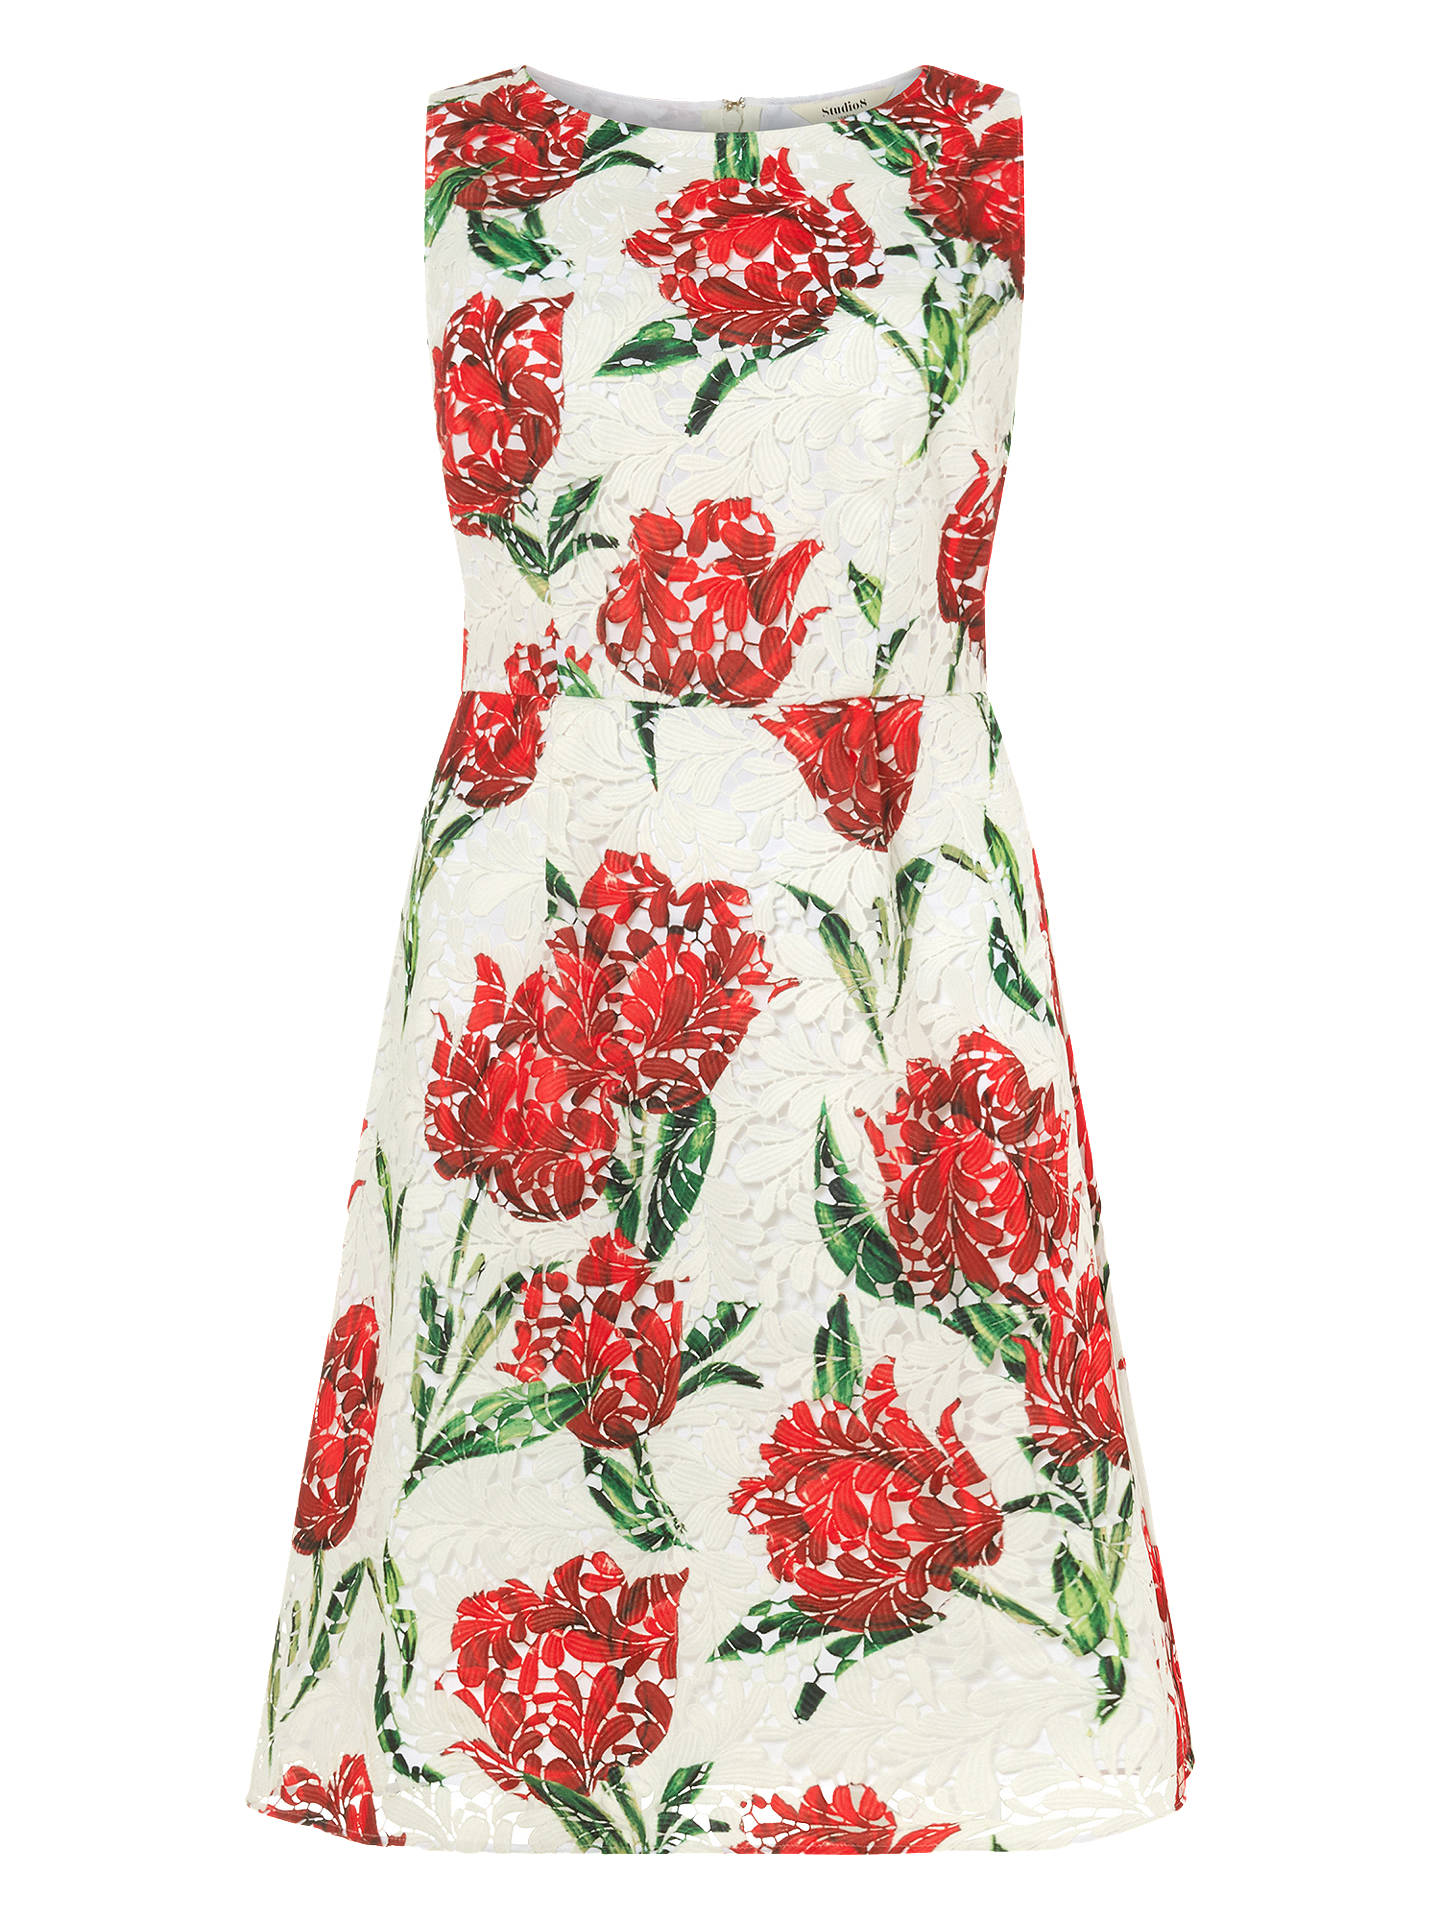 BuyStudio 8 Logan Floral Print Dress, Multi, 14 Online at johnlewis.com